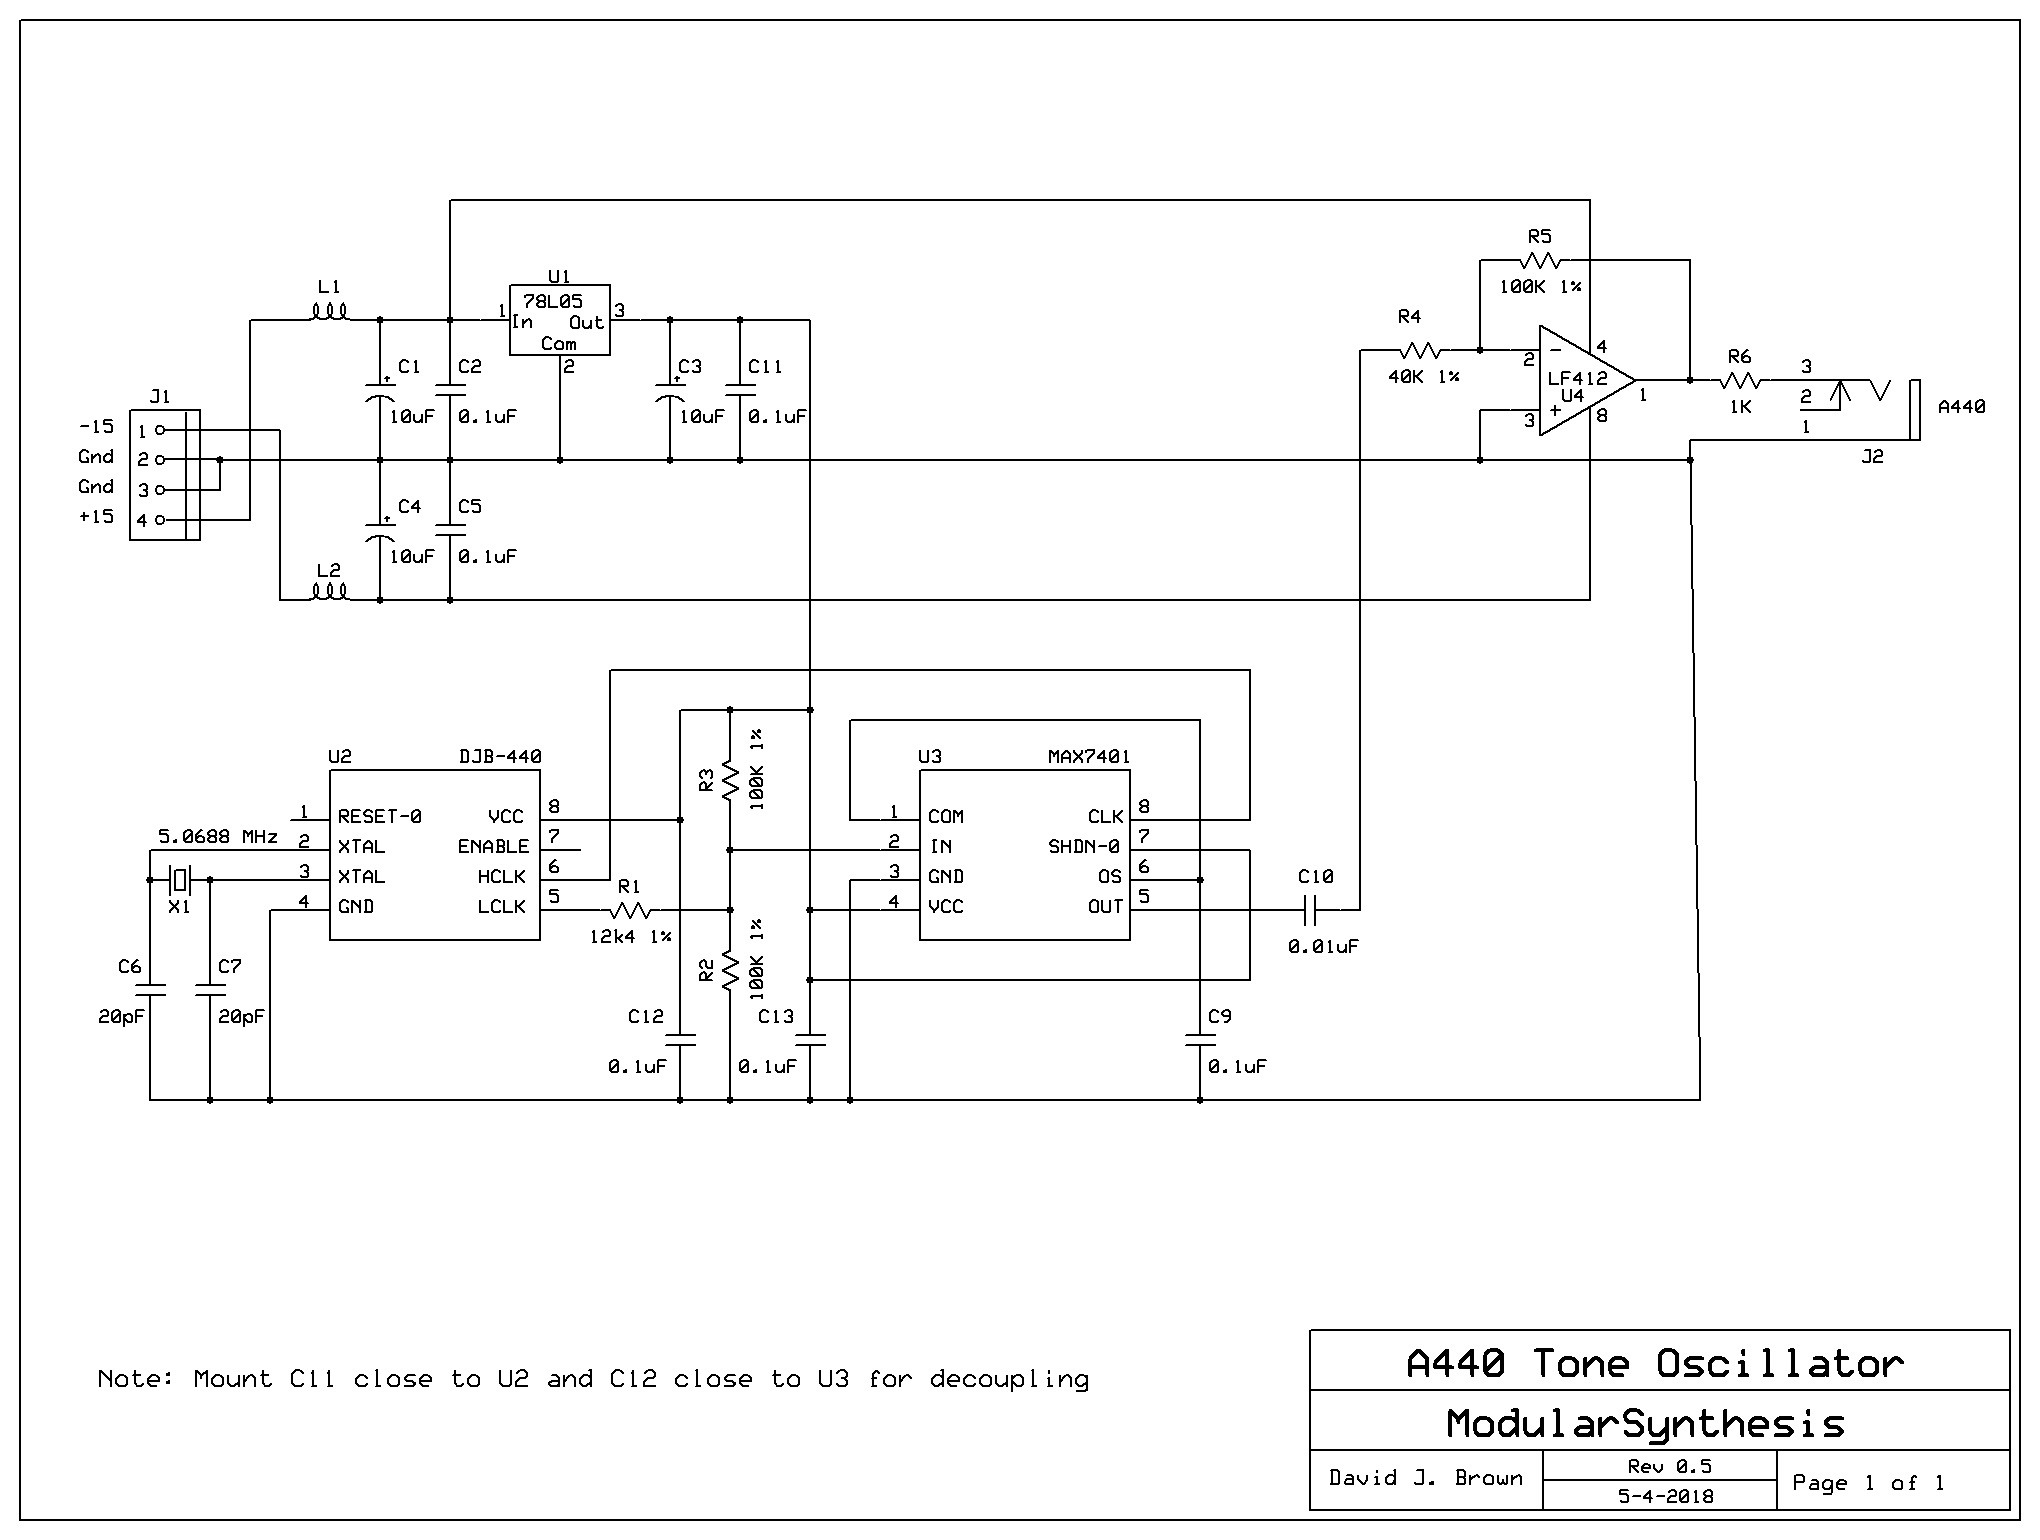 Modularsynthesis A440 Oscillator Crystal Circuit Schematic Diagram Djb Reference